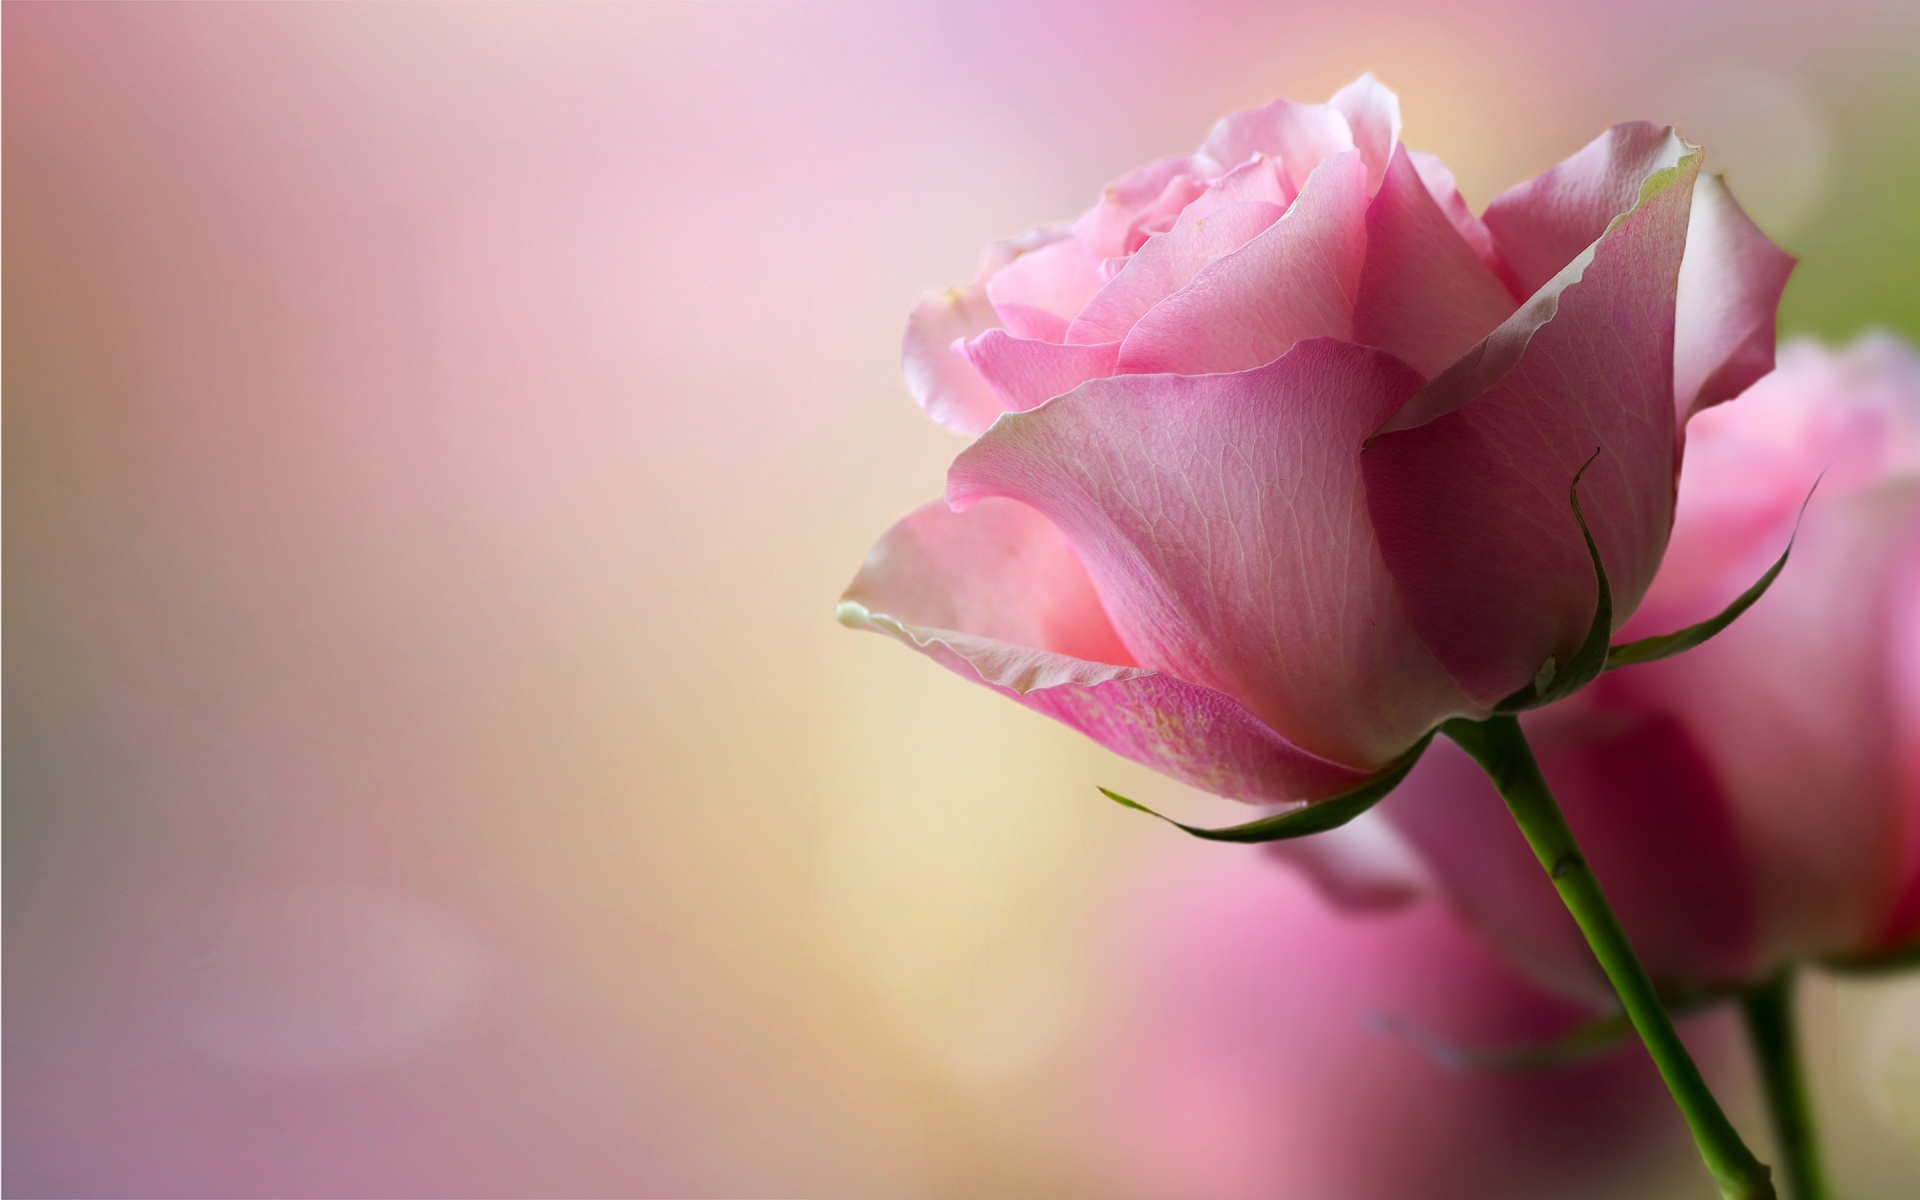 Rose pink wallpaper hd hd desktop wallpapers 4k hd - Pink rose hd wallpaper ...